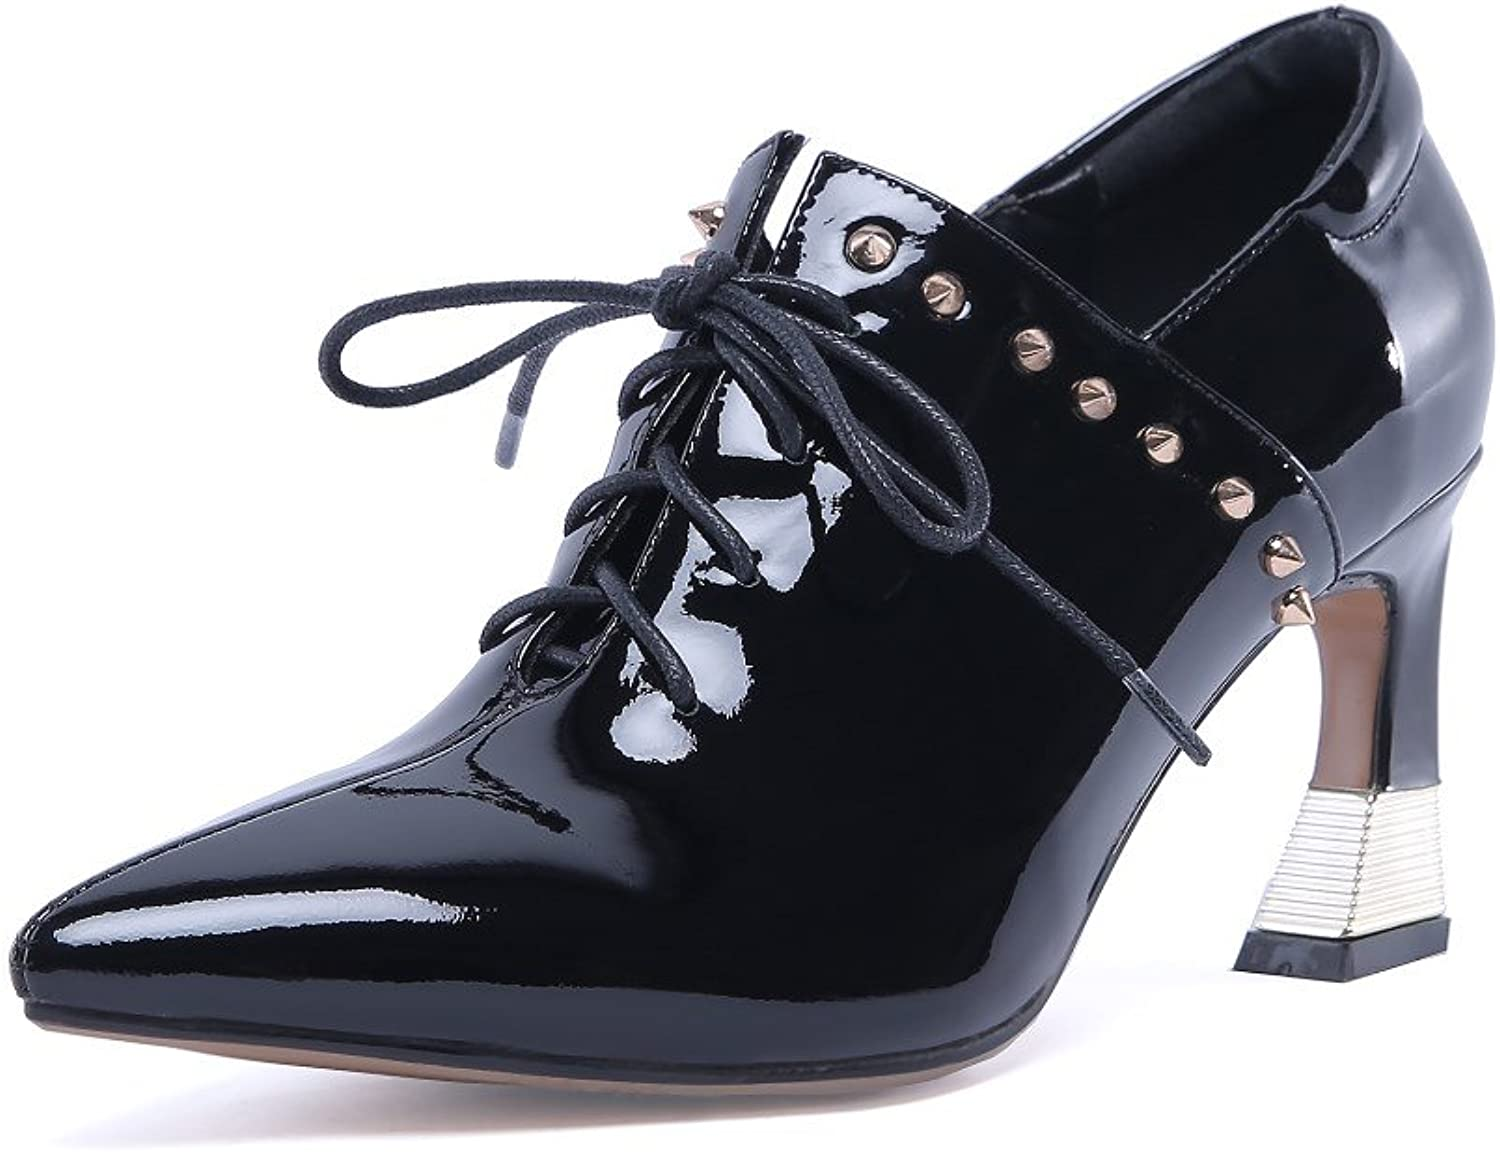 Nine Seven Patent Leather Women's Pointy Toe Lace Up Pumps - Handmade Gorgeous Comfort High Heel Dress shoes